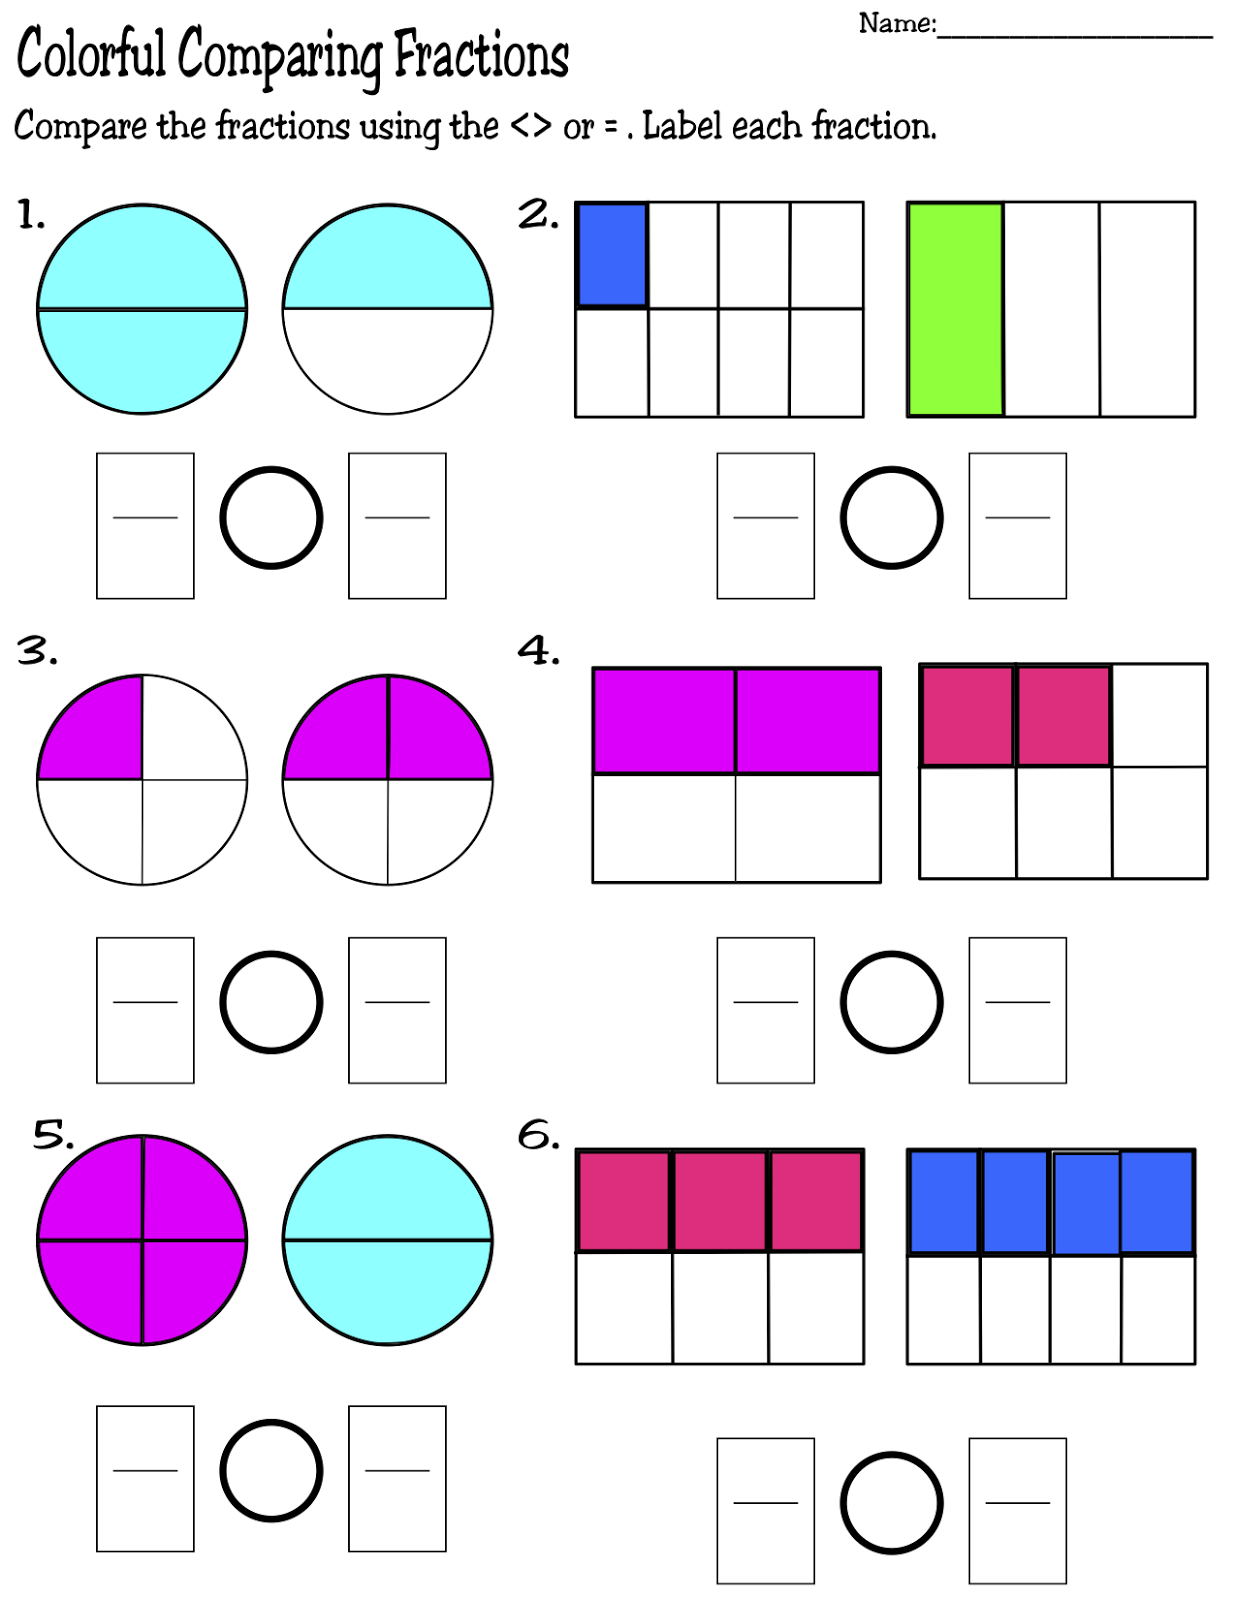 Worksheet 3rd Grade Fractions fractions lessons tes teach teaching mrs t super sunday sale